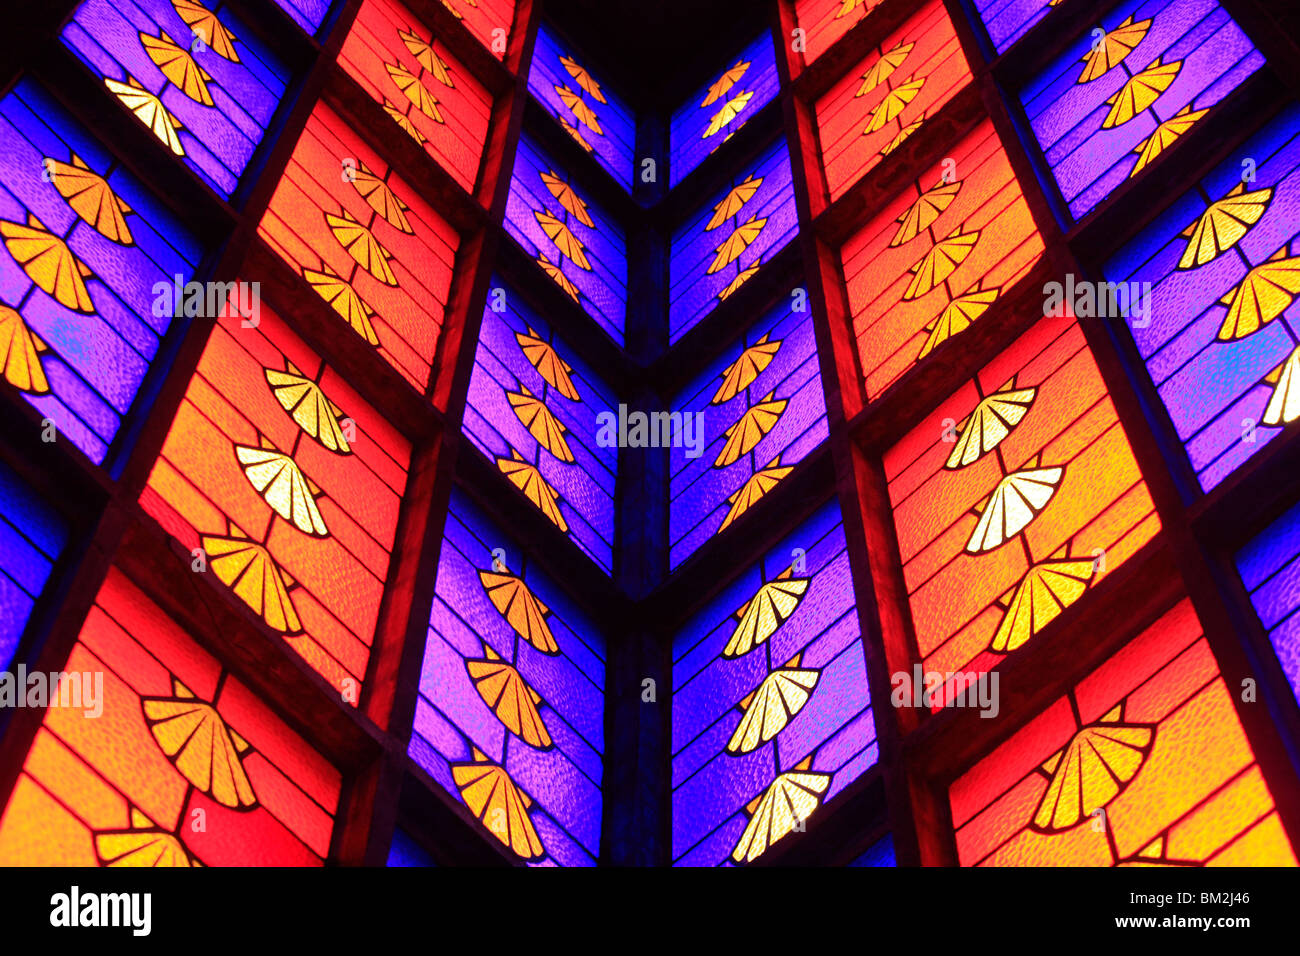 Stained glass window depicting shells, Montrouge, Hauts de Seine, France - Stock Image